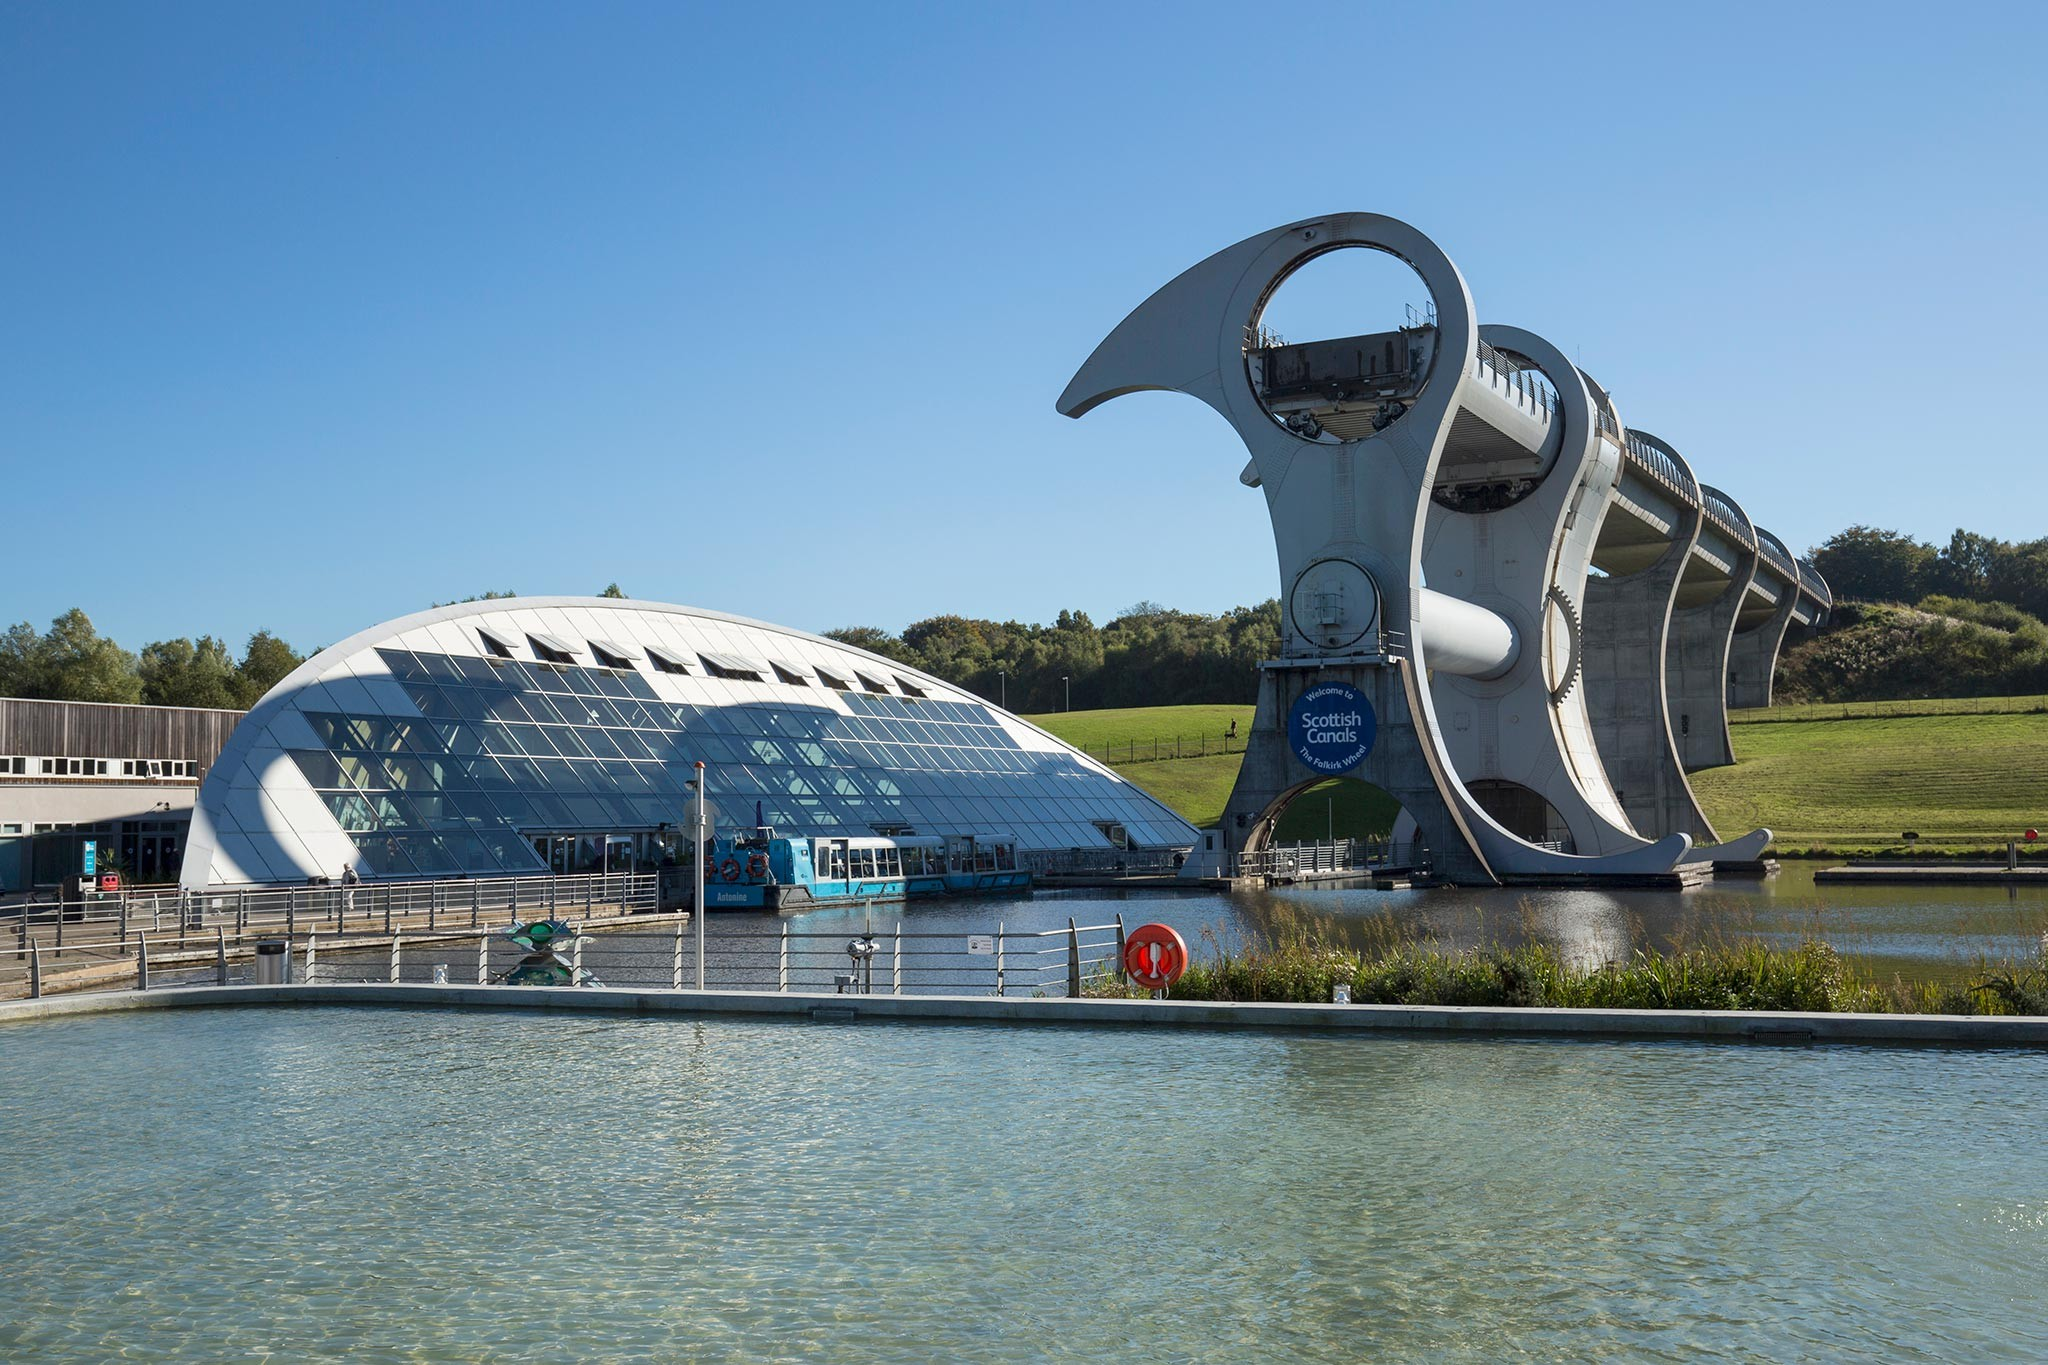 The Falkirk Wheel, the world's only rotating boat lift, connecting the Union Canal and the Forth & Clyde Canal